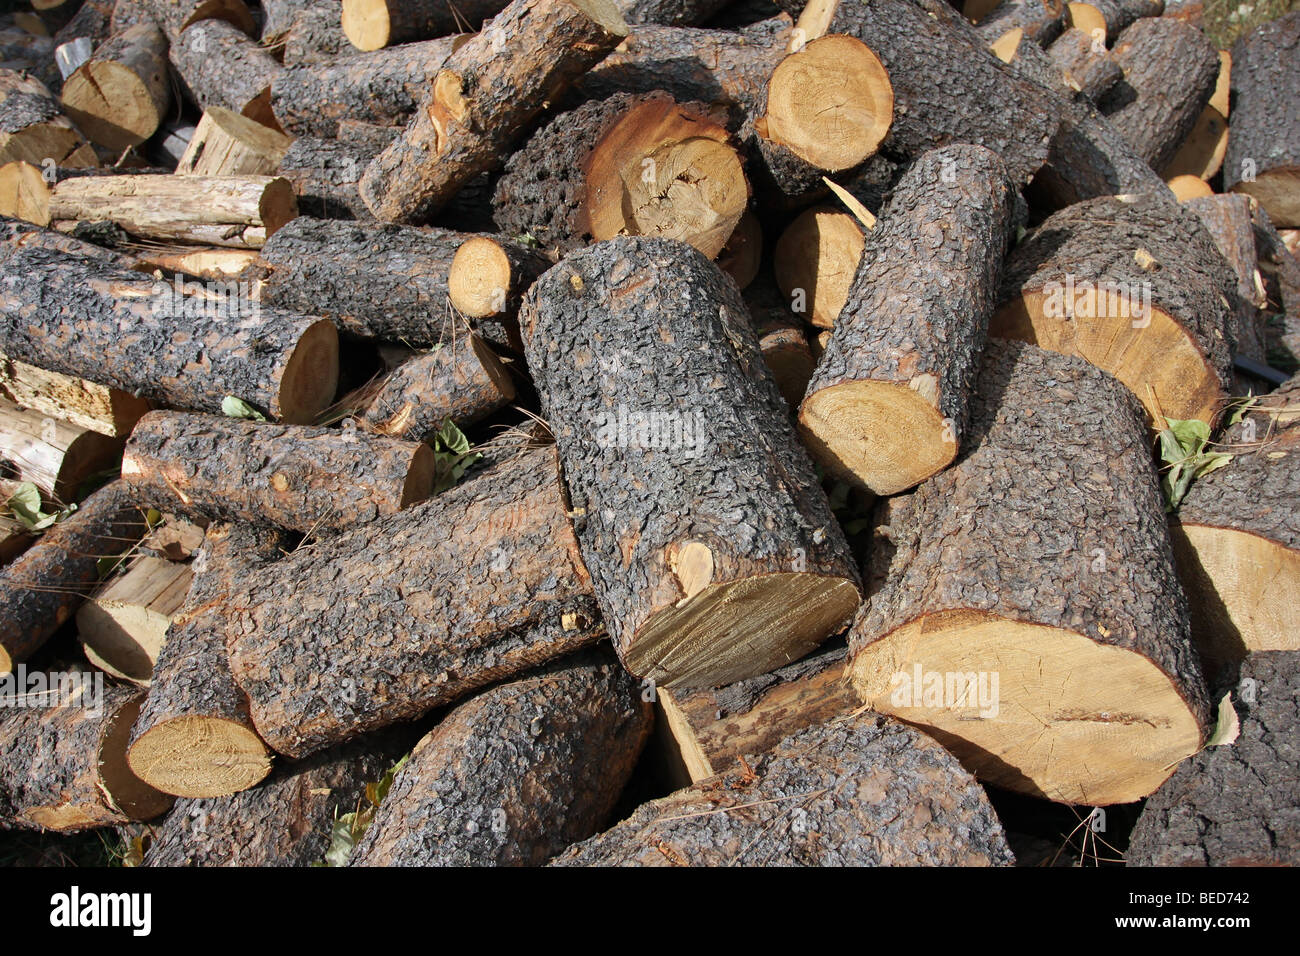 Fire wood pile of round lengths. - Stock Image